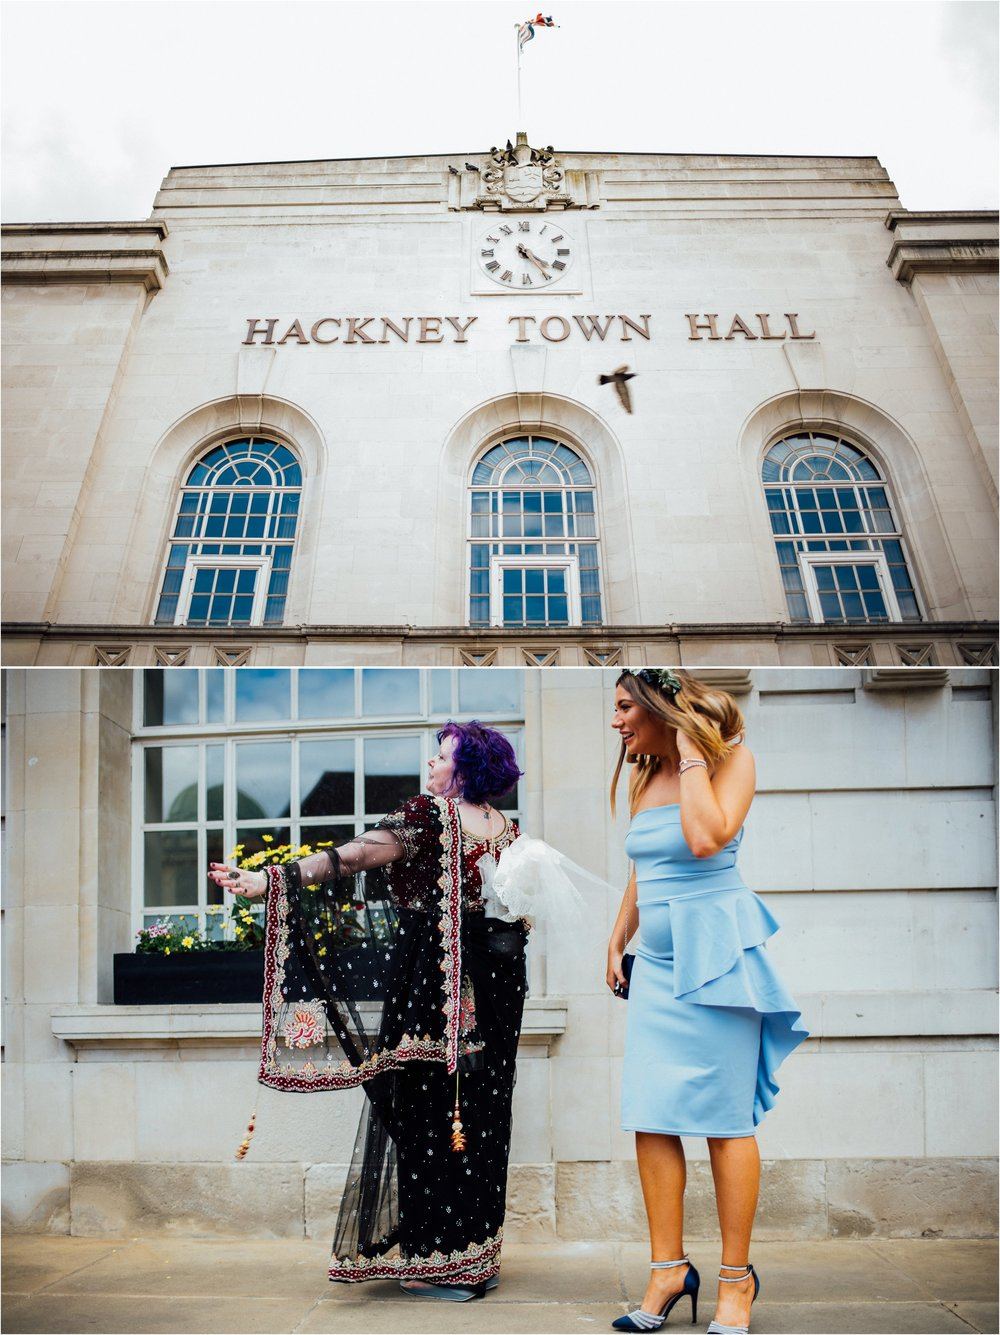 Hackney town hall wedding photography_0066.jpg